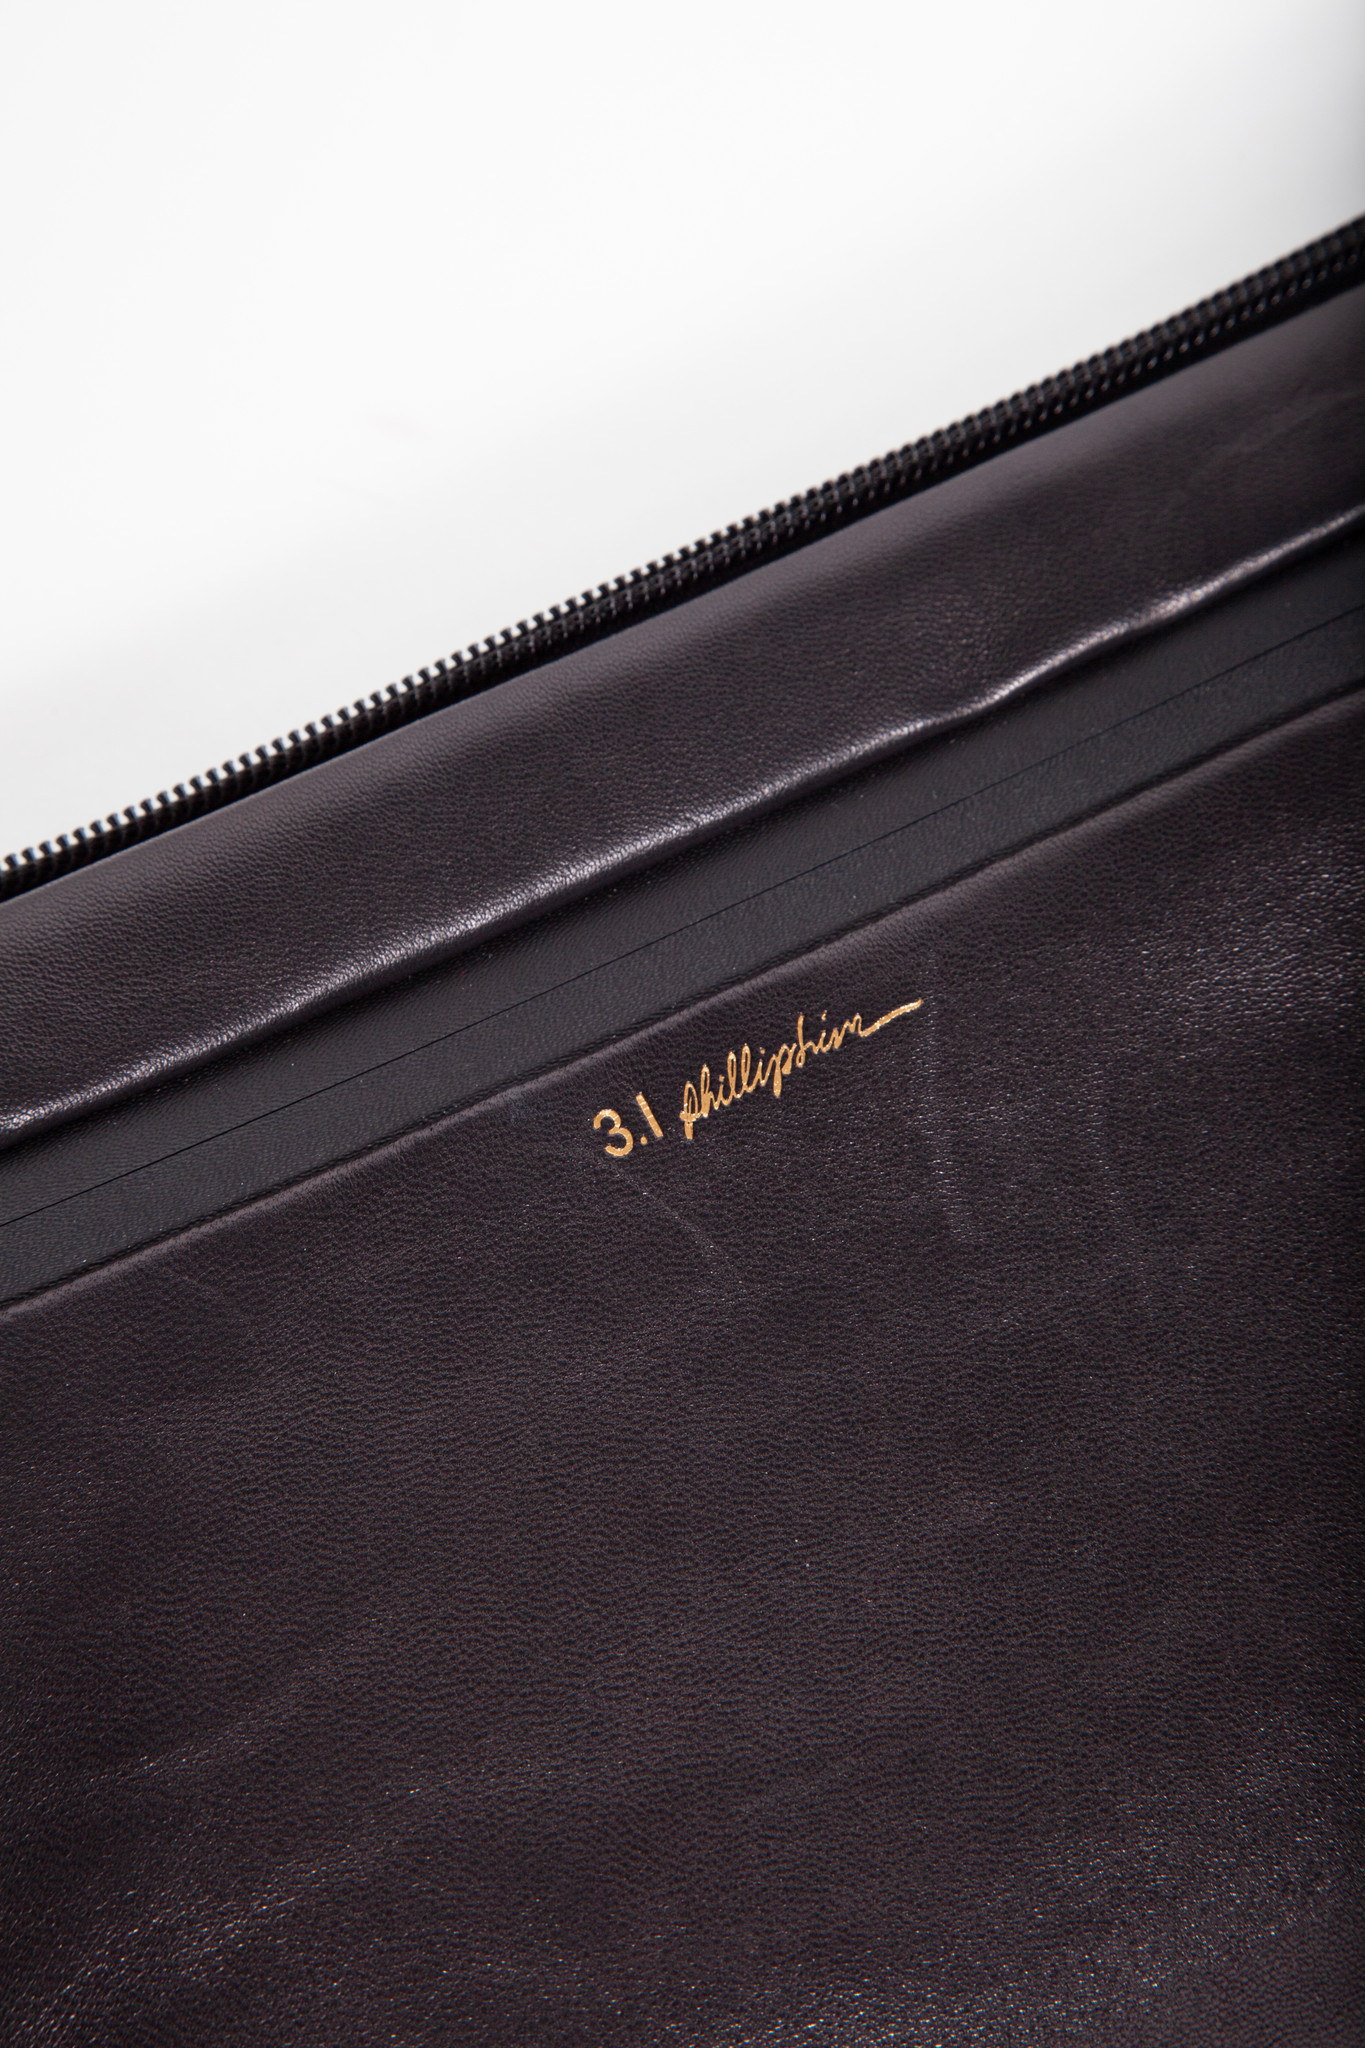 3.1 Phillip Lim GREEN LEATHER AND NEOPRENE POUCH - NEW